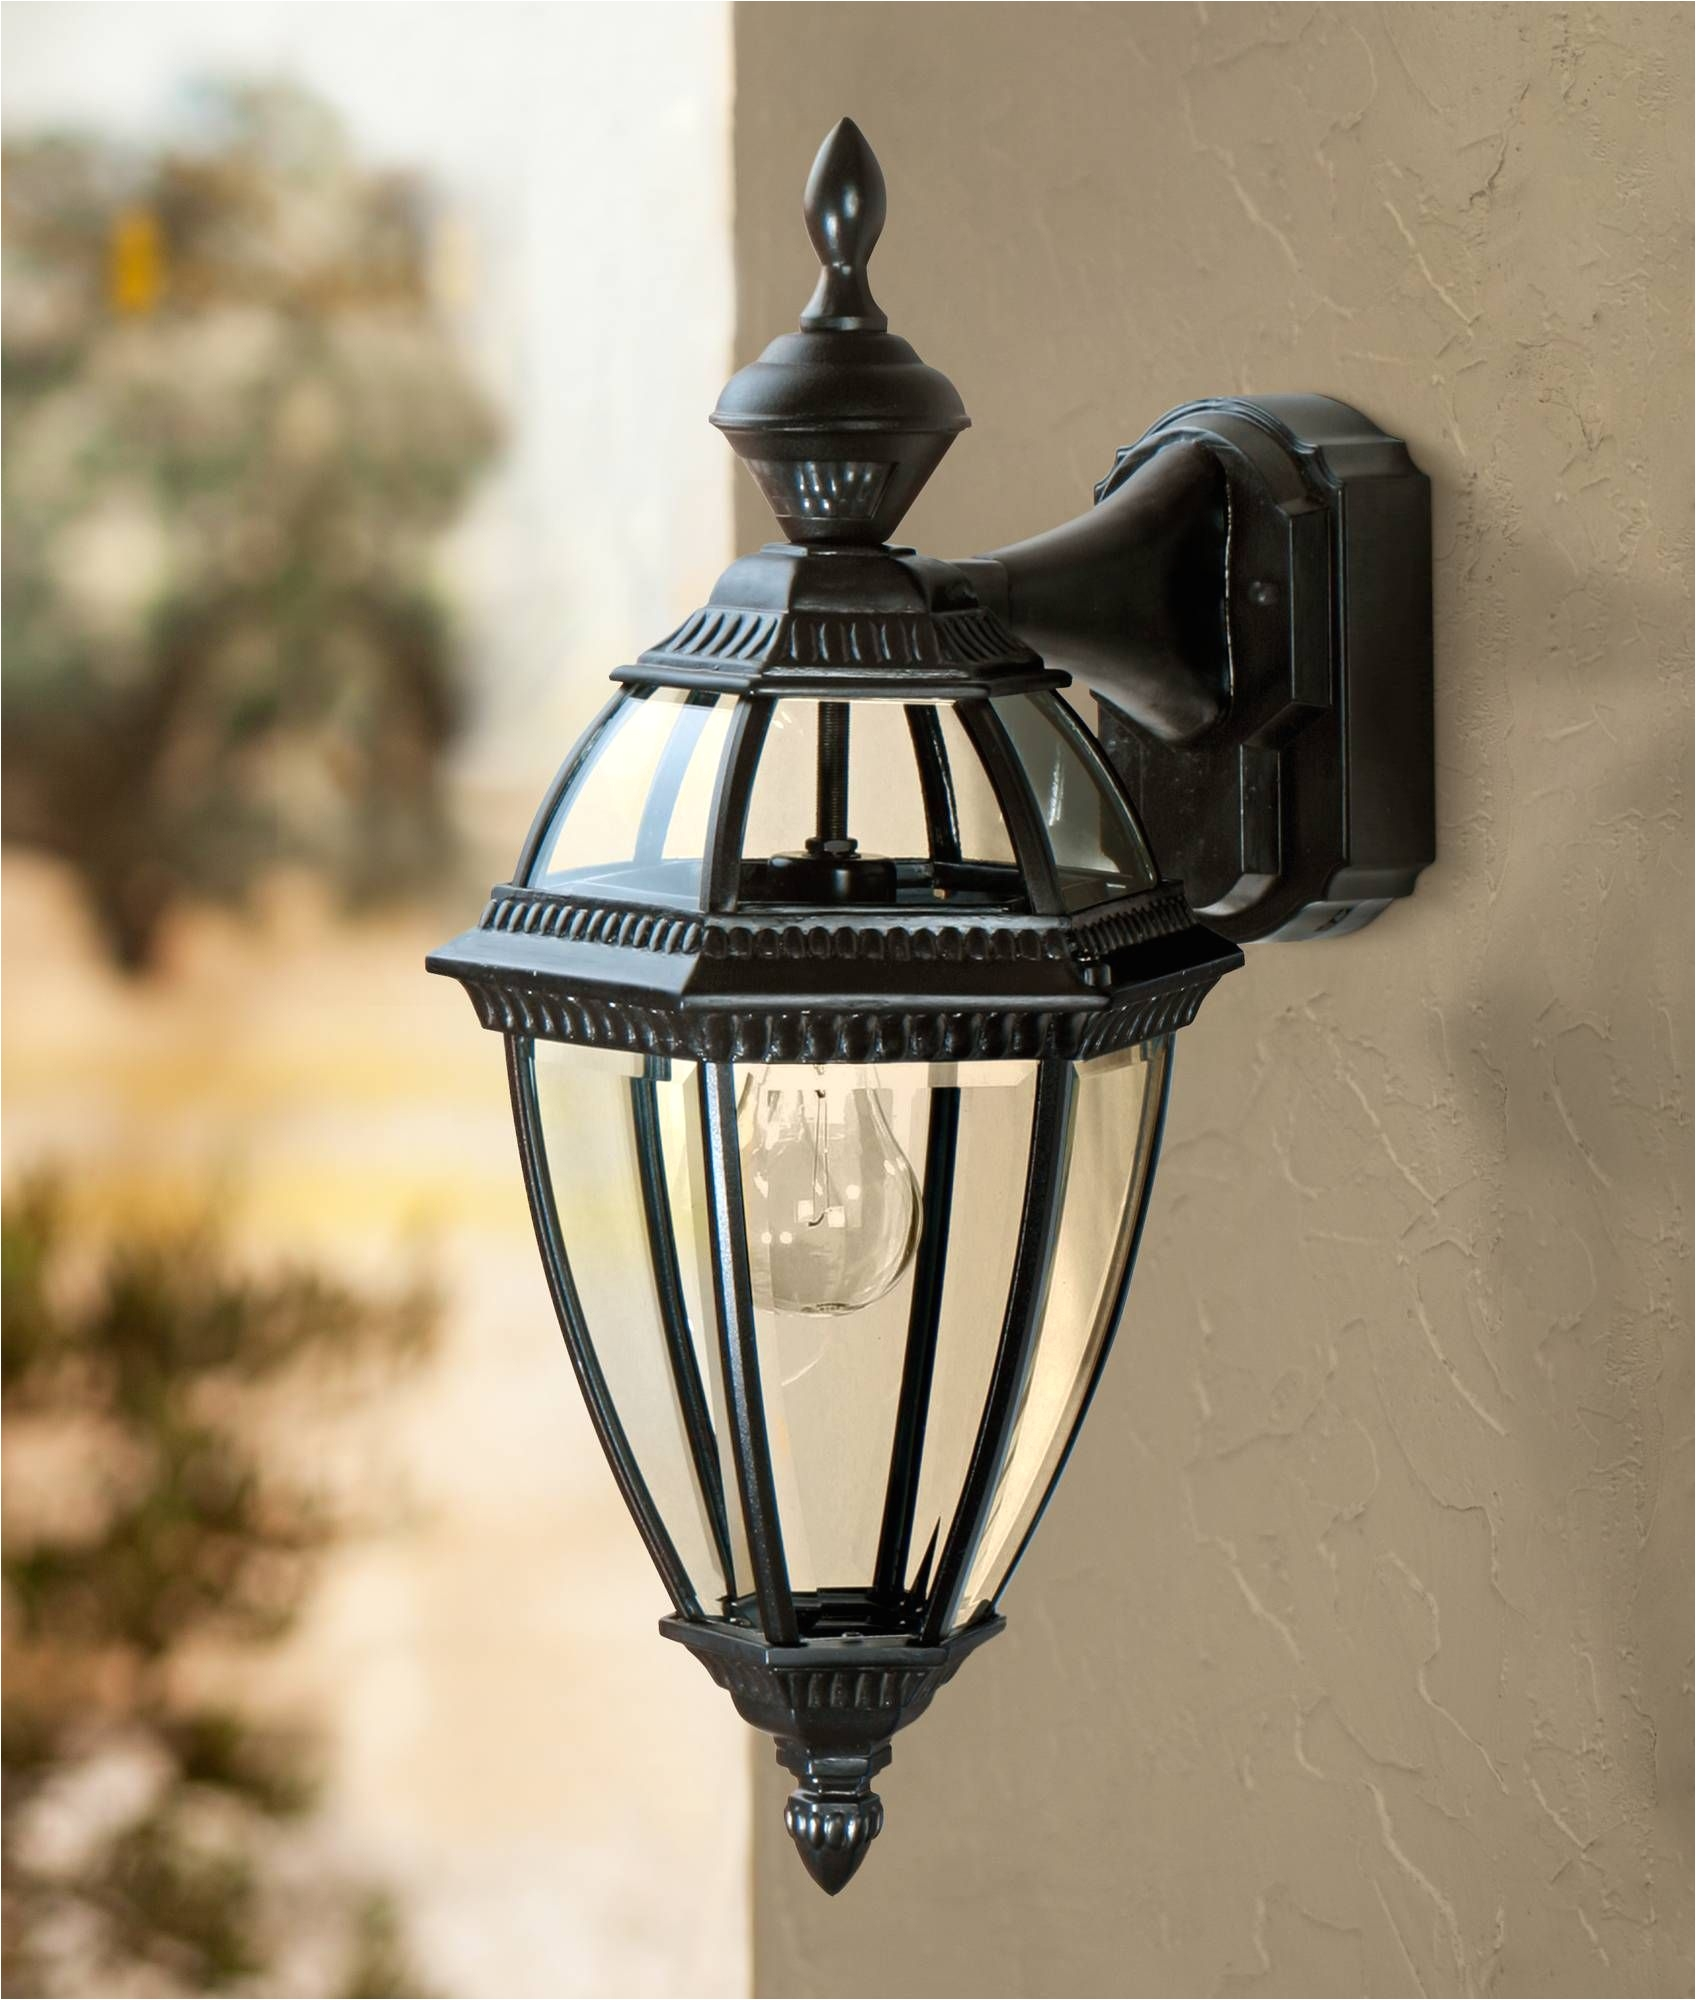 delightful exterior light with outlet or heritage black 21 dusk to dawn motion sensor outdoor light